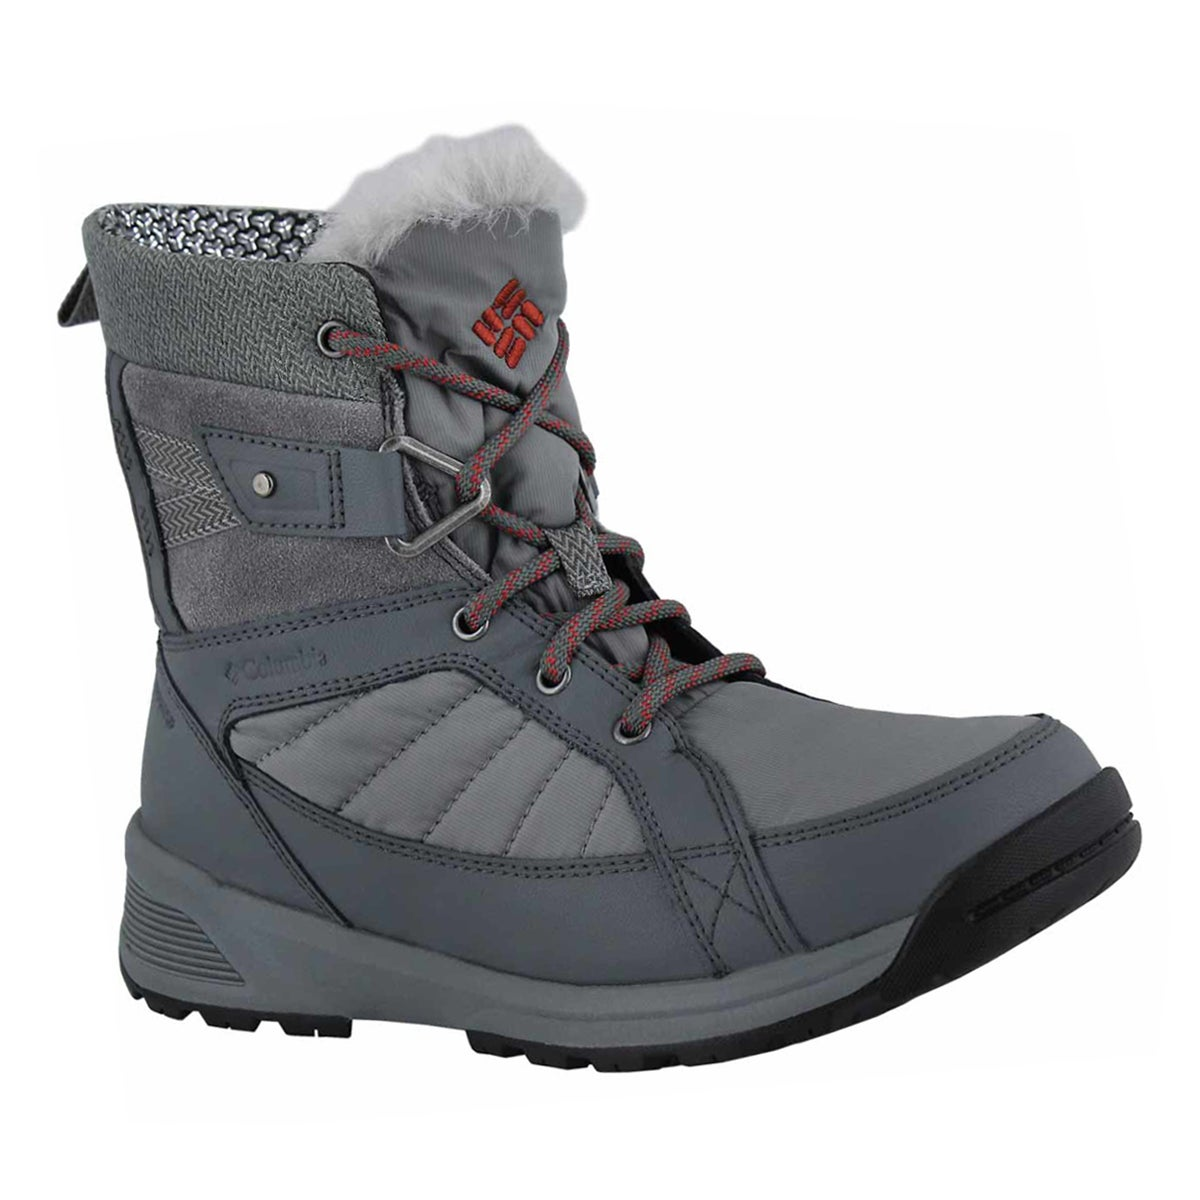 Lds MeadowsShorty OmniHeat 3D grey boot